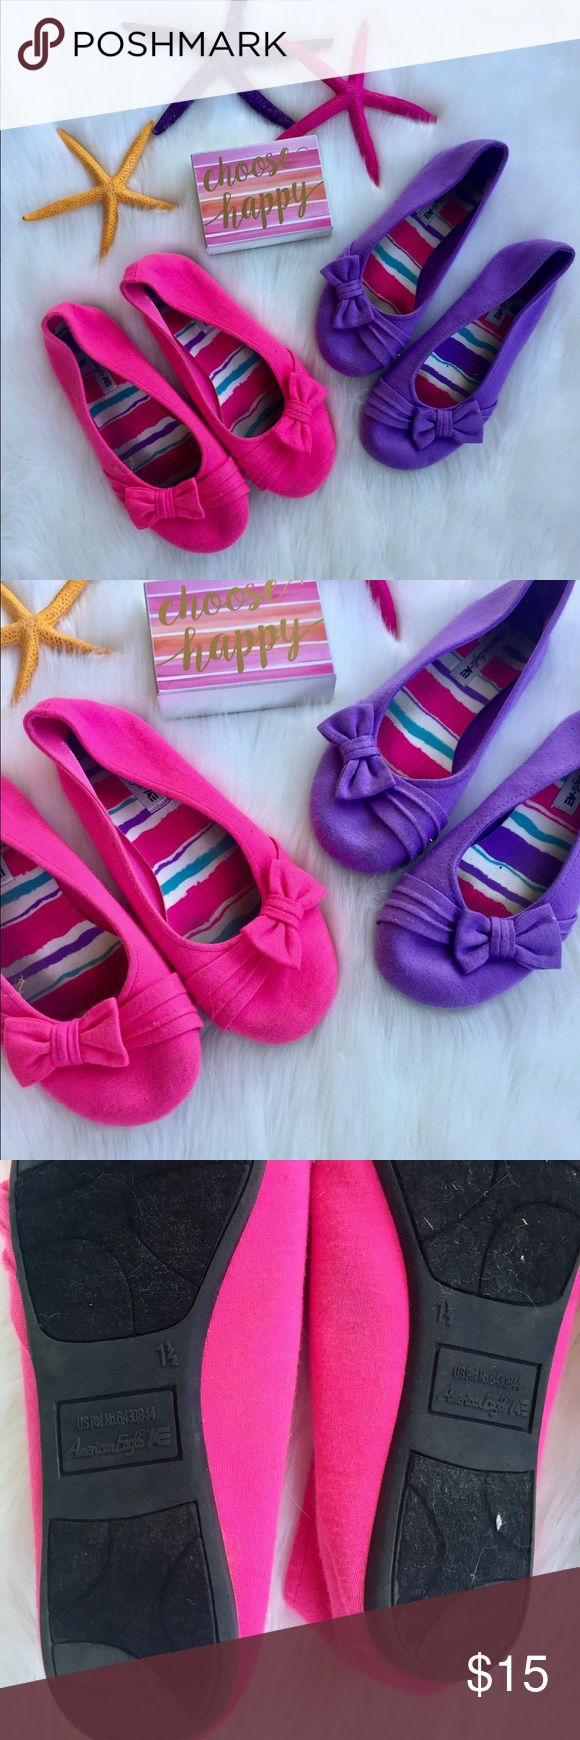 (2) Pairs of Girls Ballet Flats (2) Pairs of Girls Ballet Shoes Pink (size 1.5) & Purple (size 1) preloved shoes in excellent condition!    🤔 Ask any & all questions ✅Use Offer Button 🚭& 🐶😺🐠Free Home 🚫Trades/Offline Transactions 📦Bundle & Save Shoes